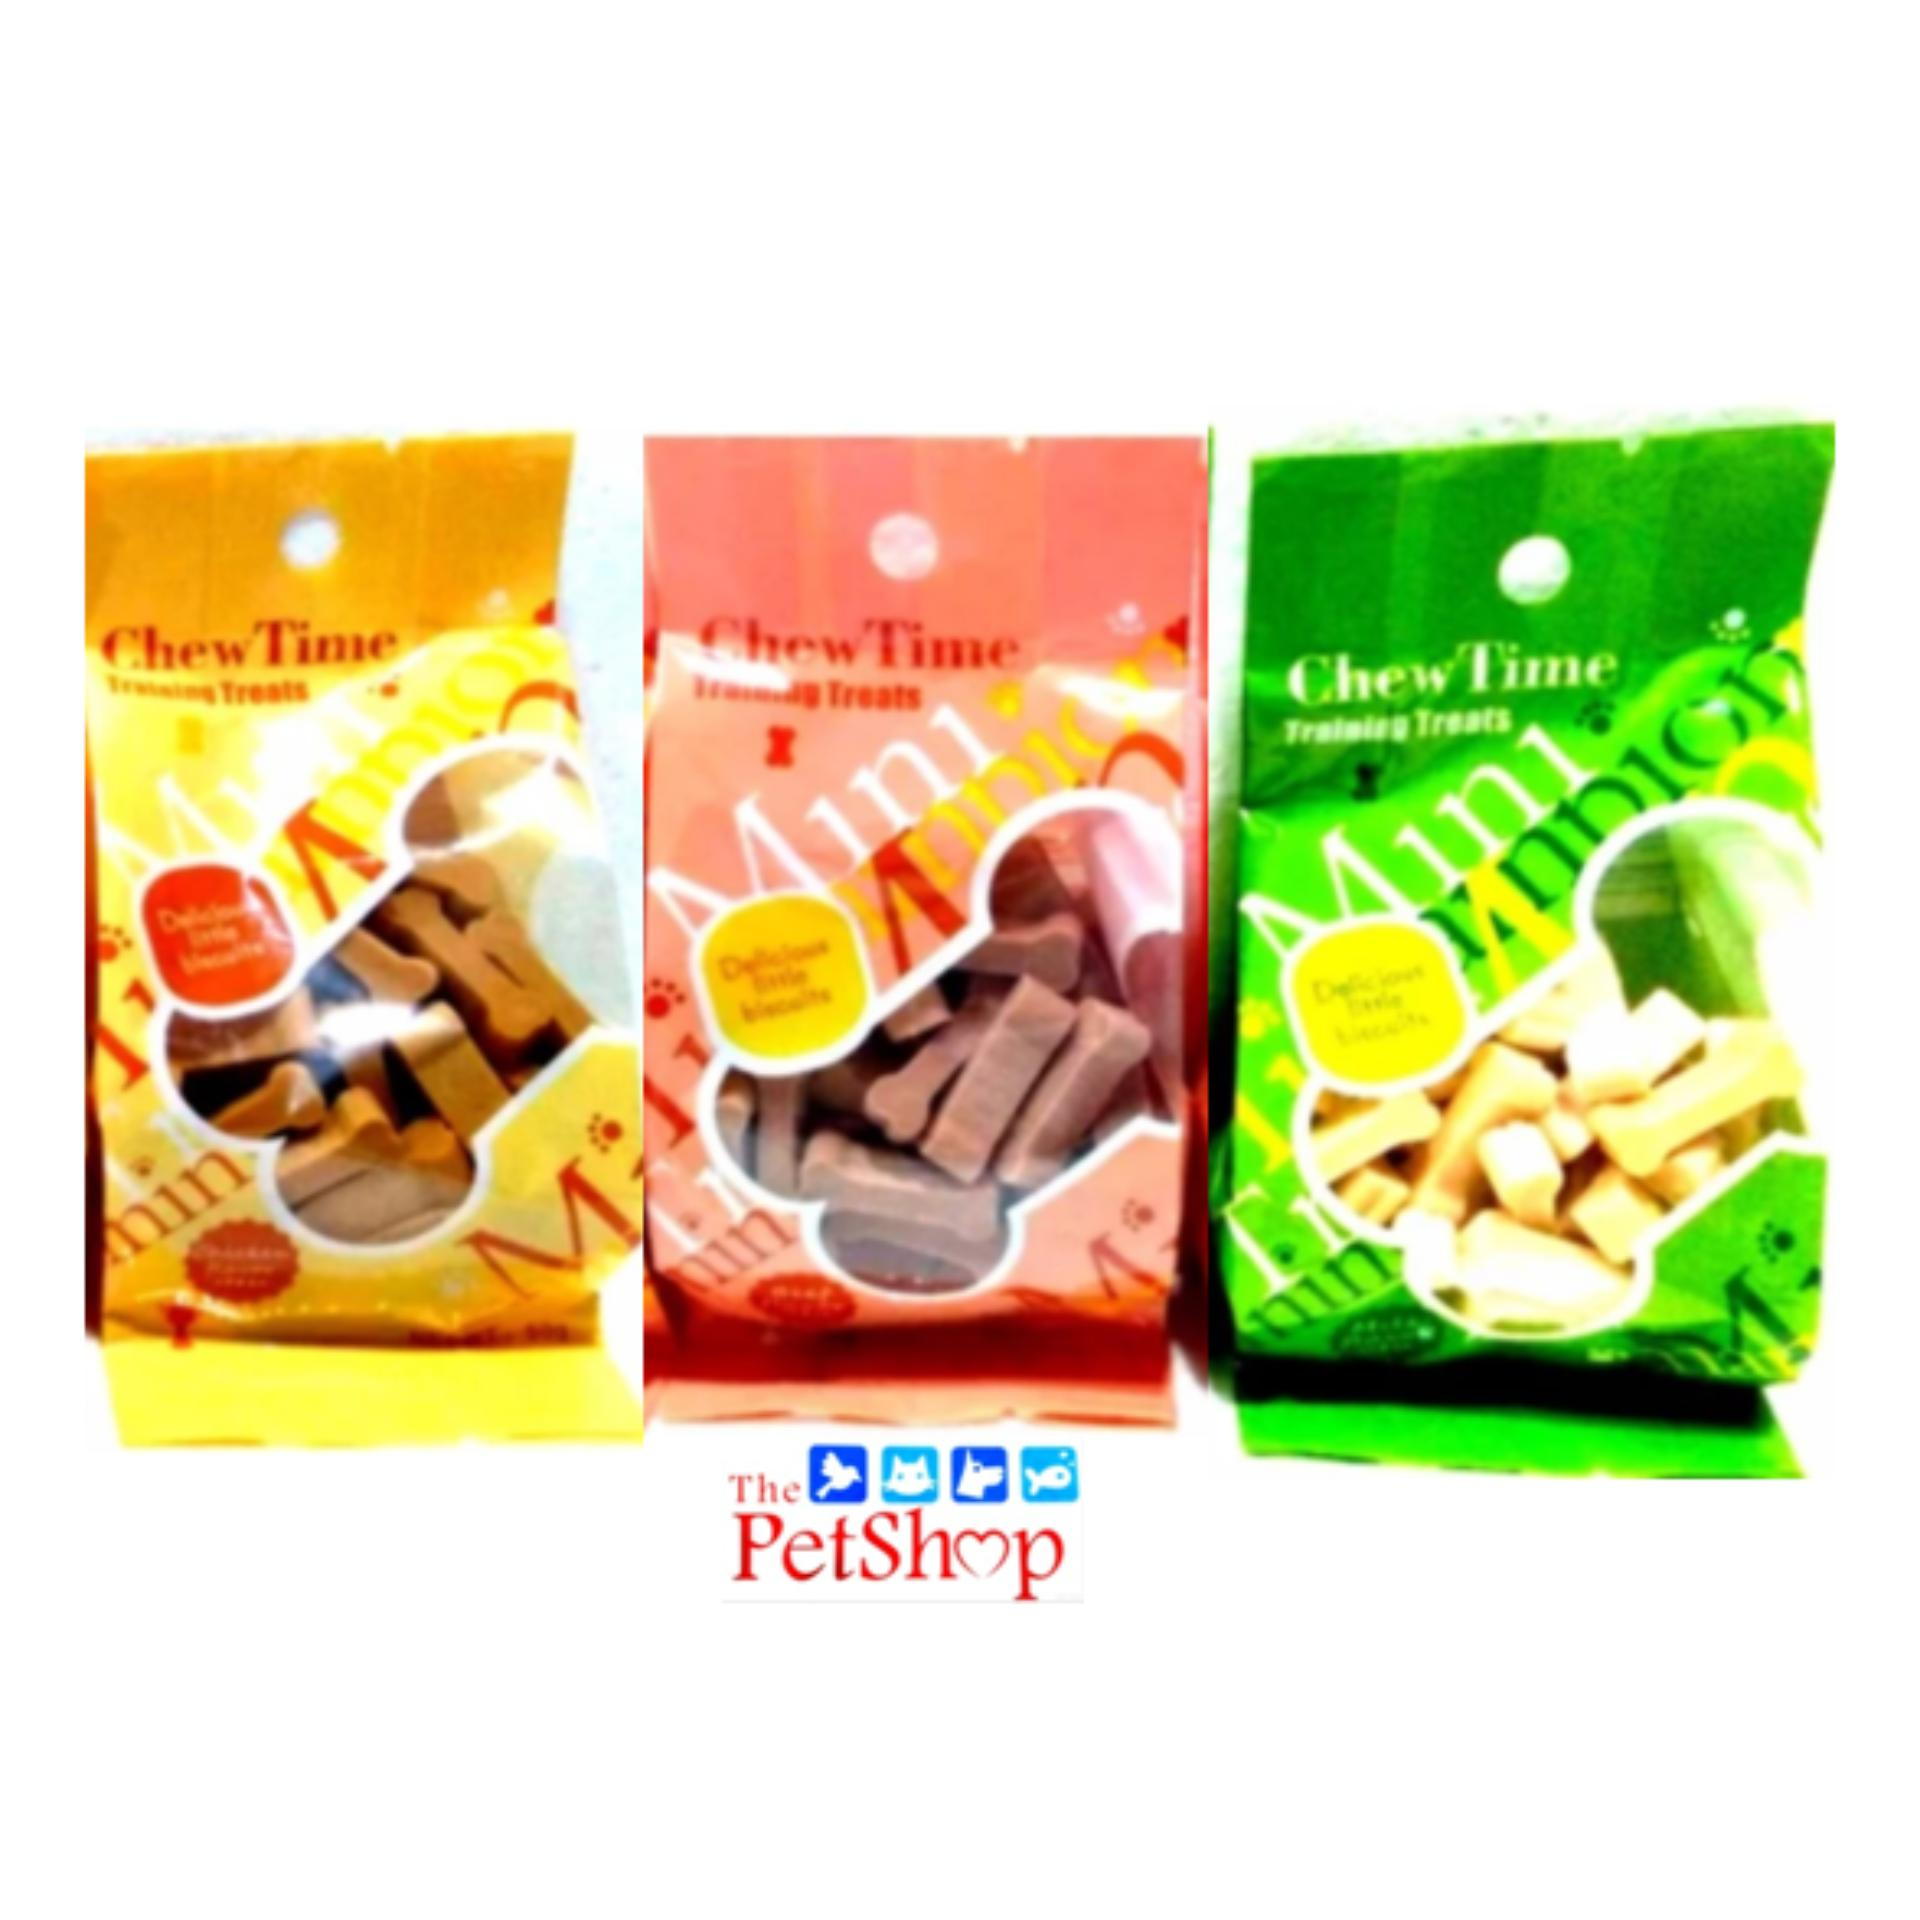 Chew Time Training Treats 50g Assorted By Thepetshop.